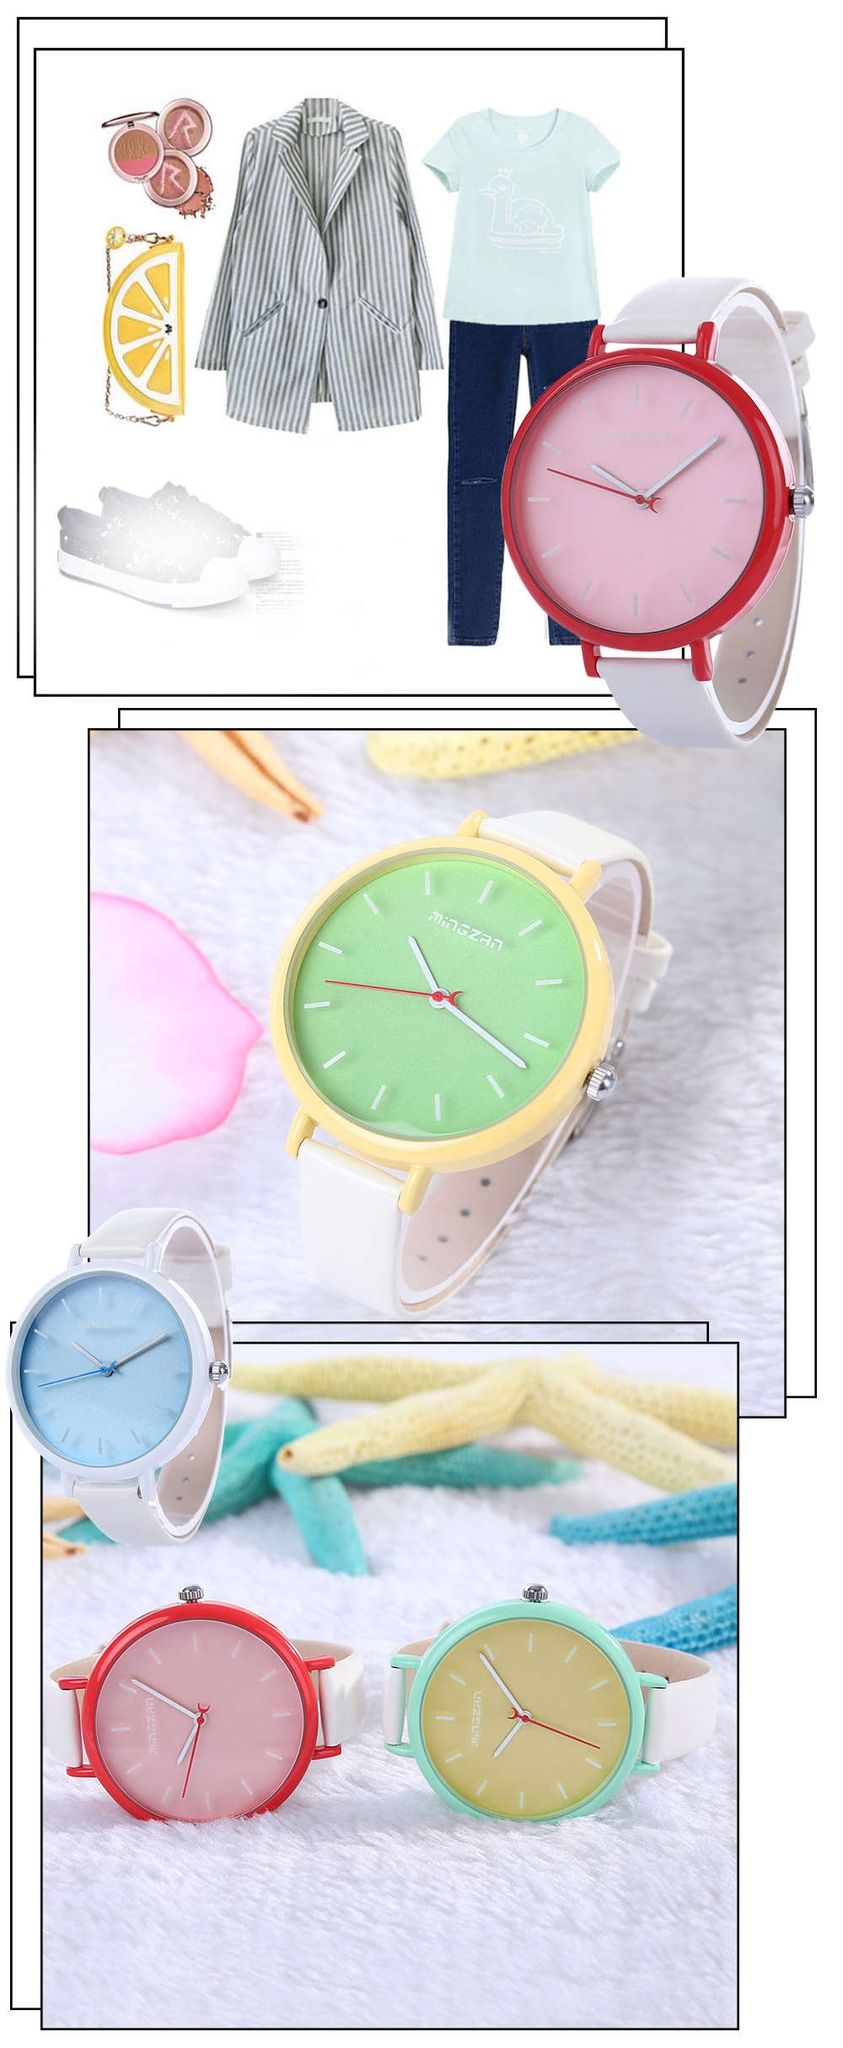 MINGZAN 6207 Women Quartz Watch Stereo Scales Female Wristwatch